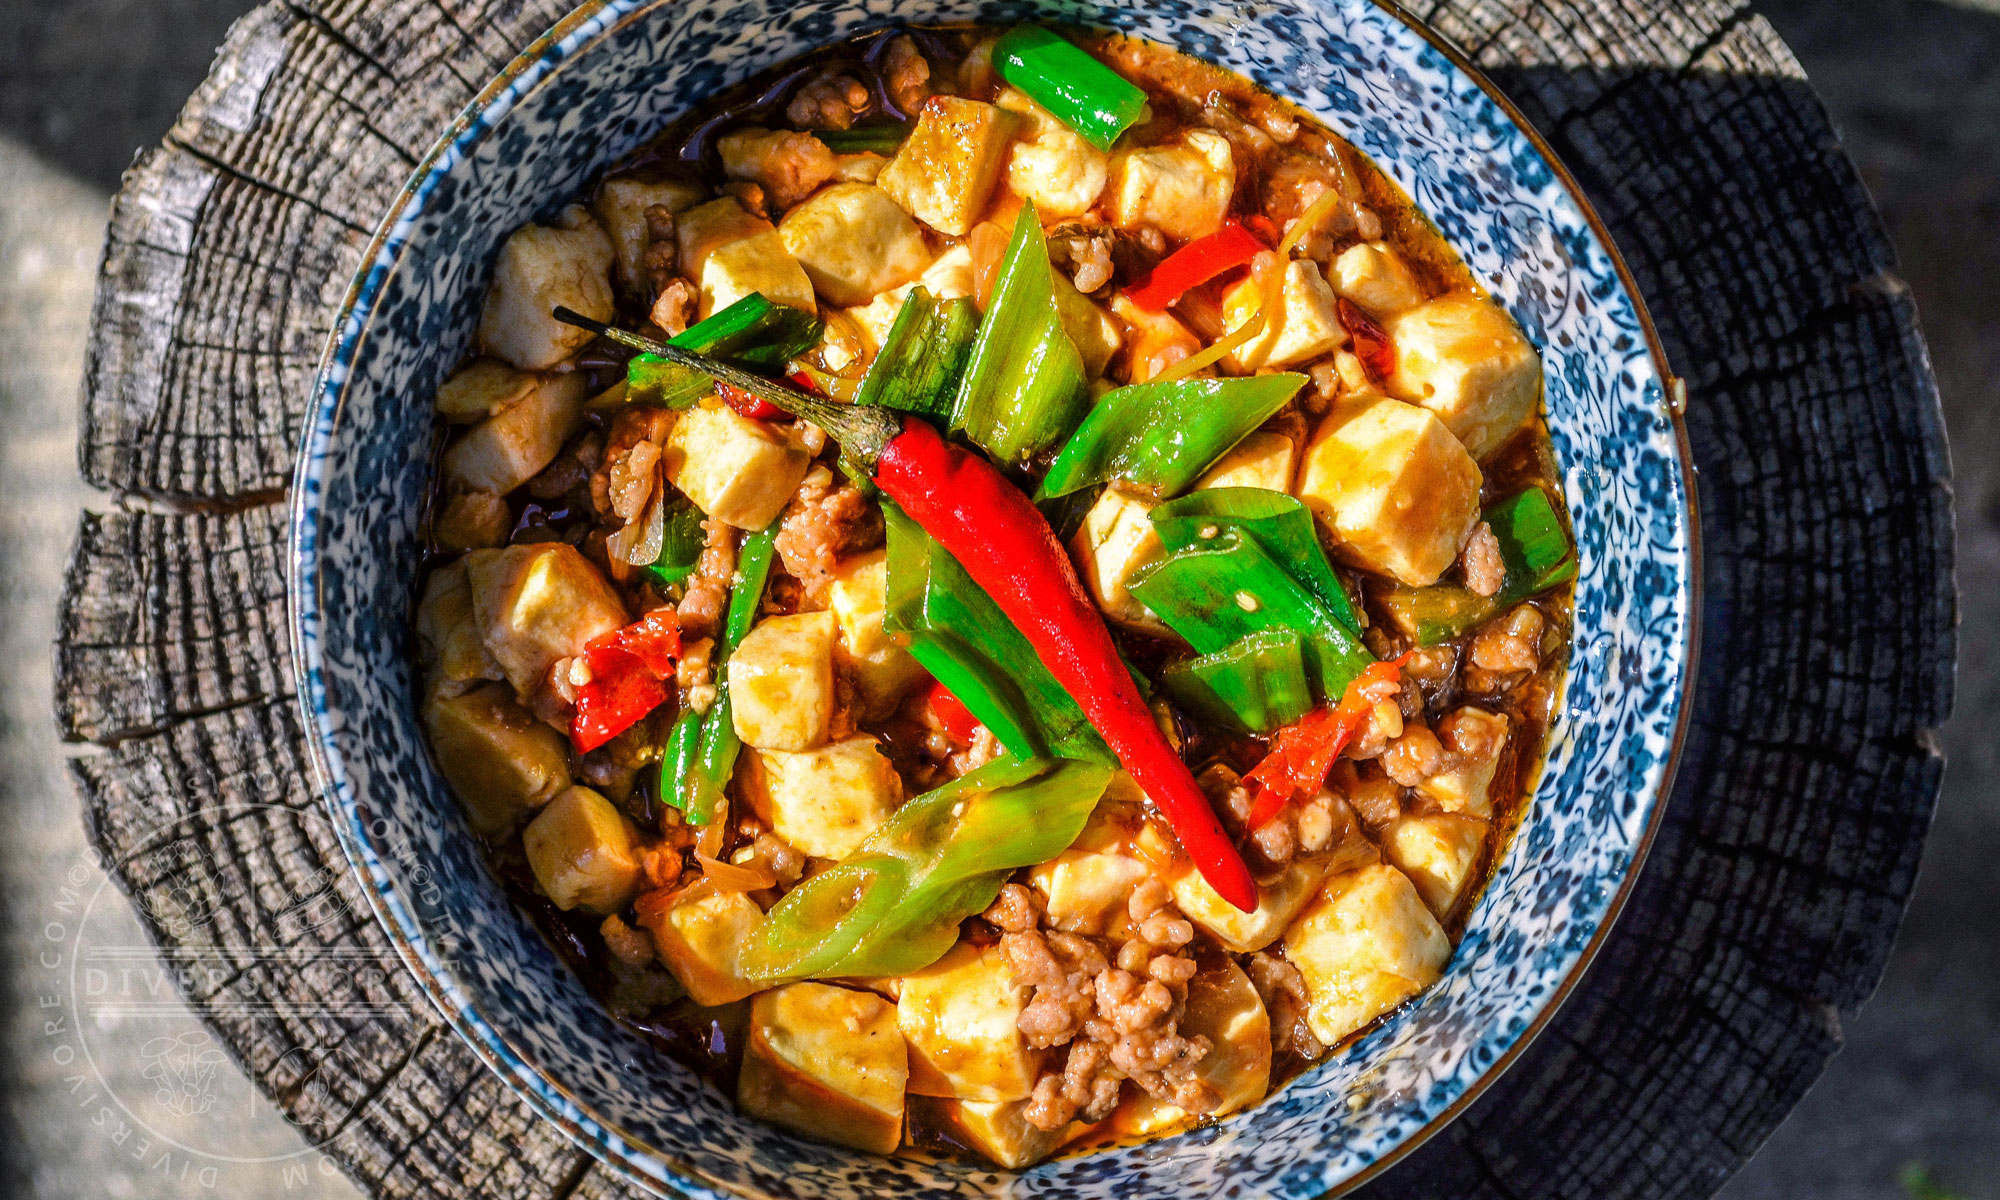 Mapo tofu in a blue and white bowl, topped with a red chili pepper